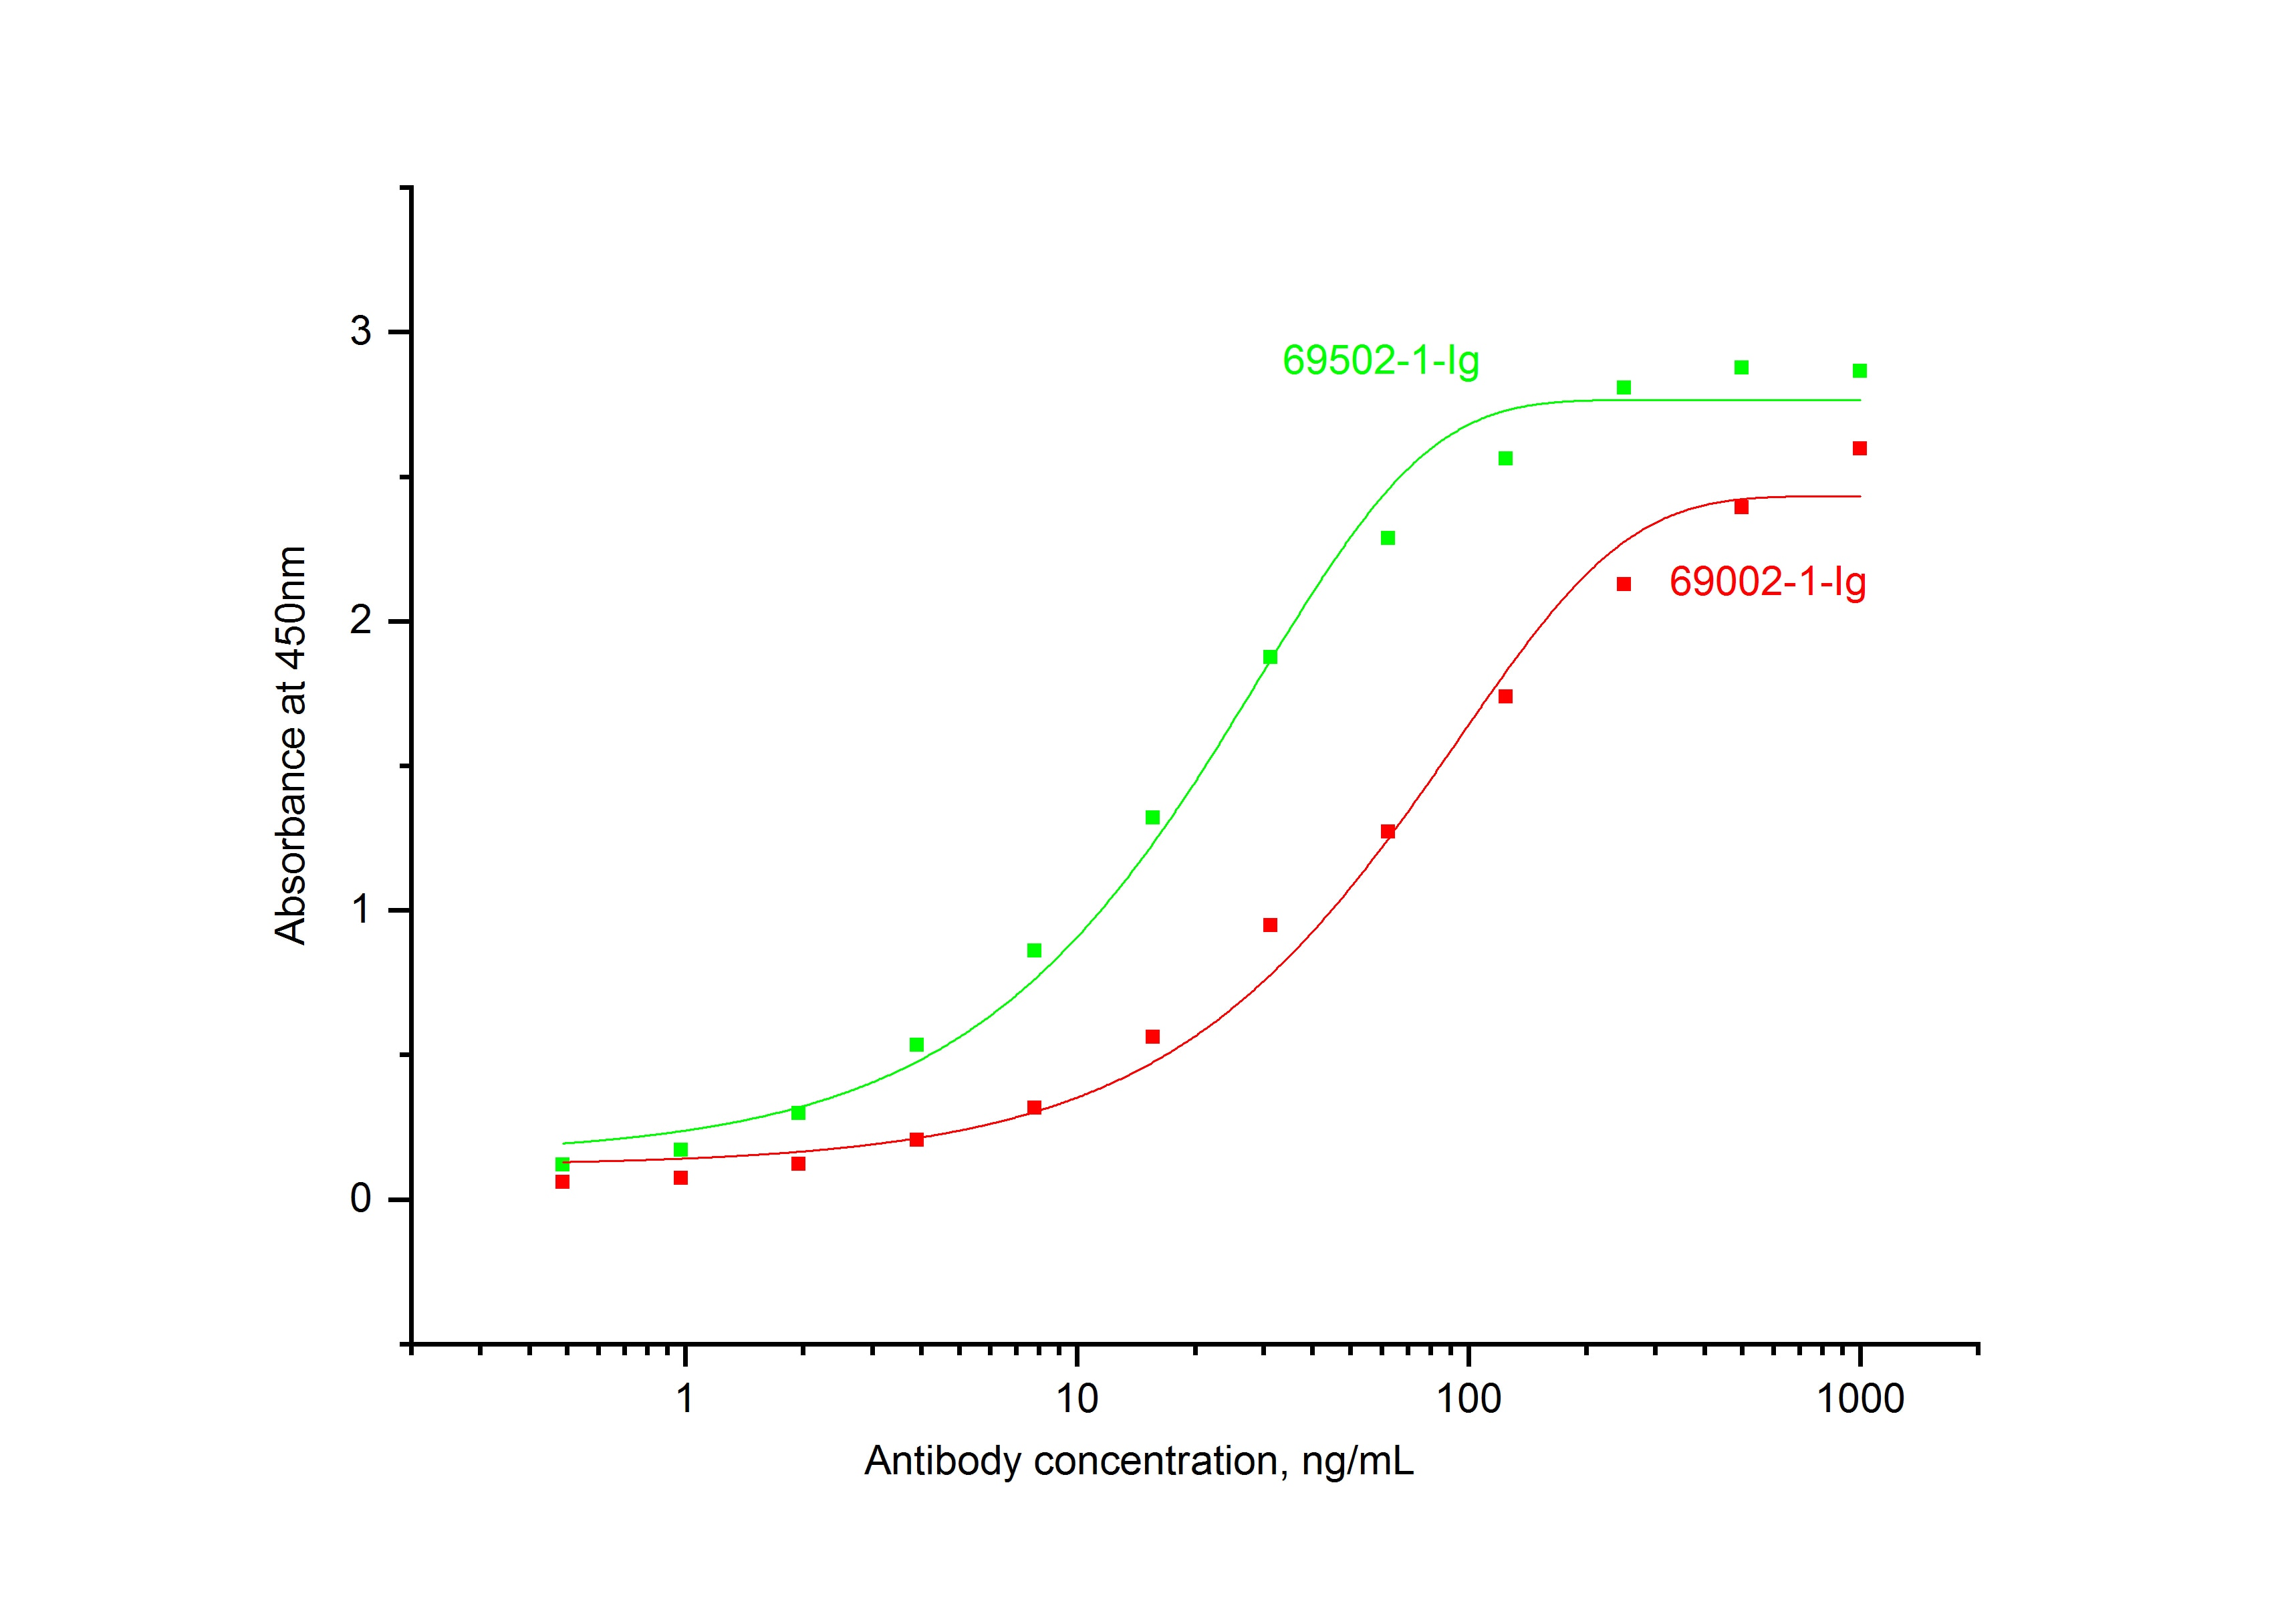 ELISA experiment of Recombinant protein using 69002-1-Ig